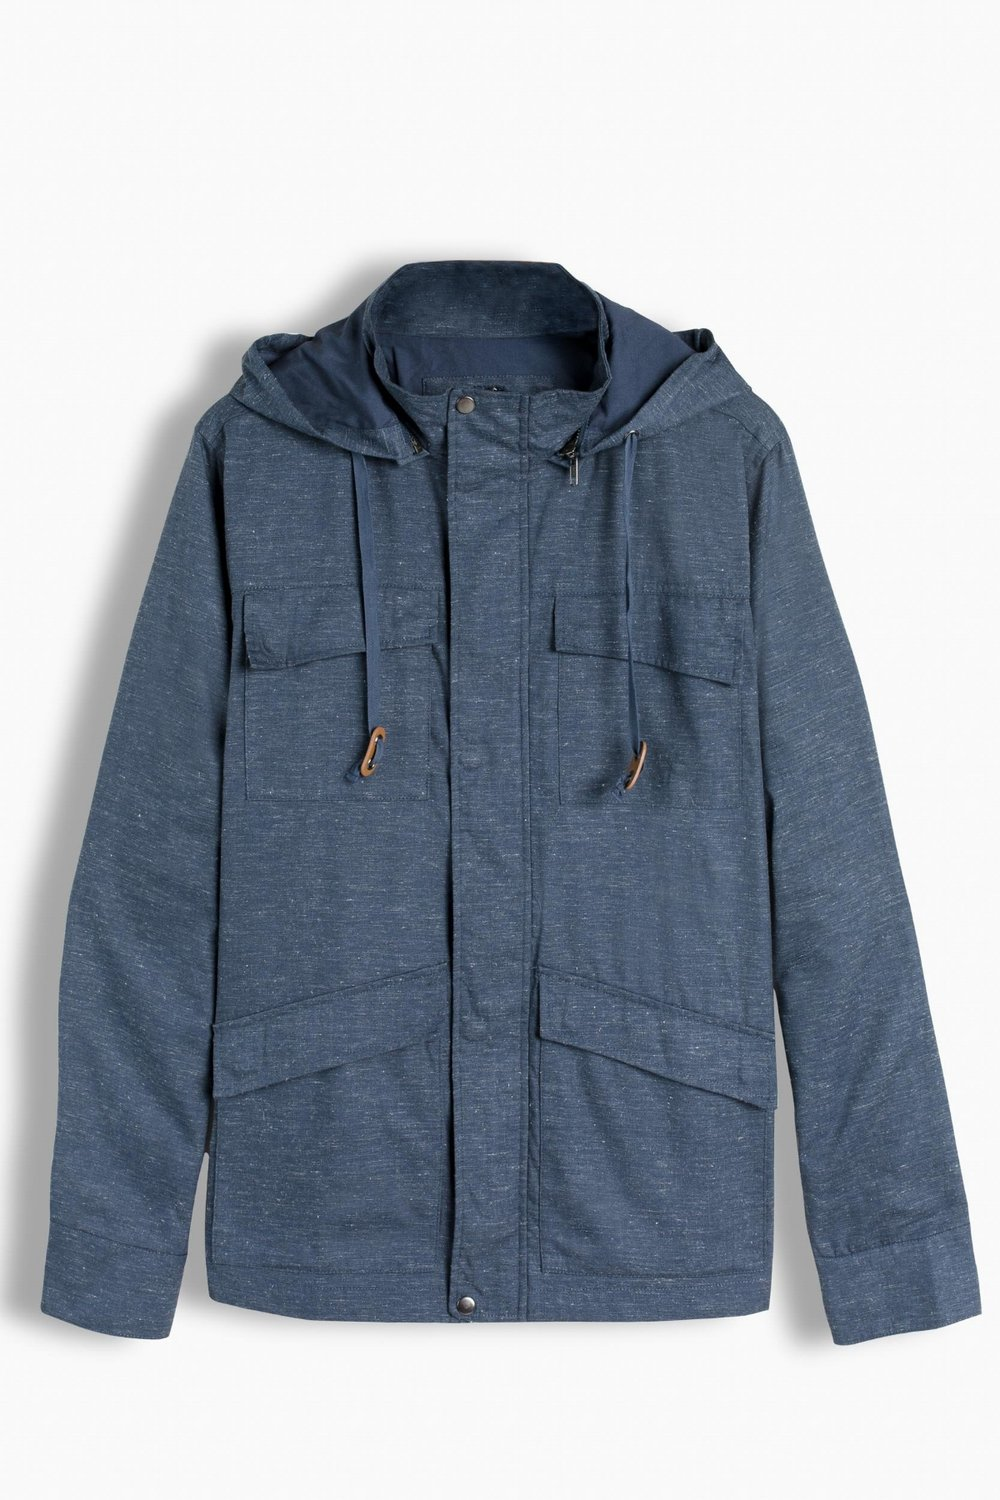 UBB-wheelercoat-navy.jpg